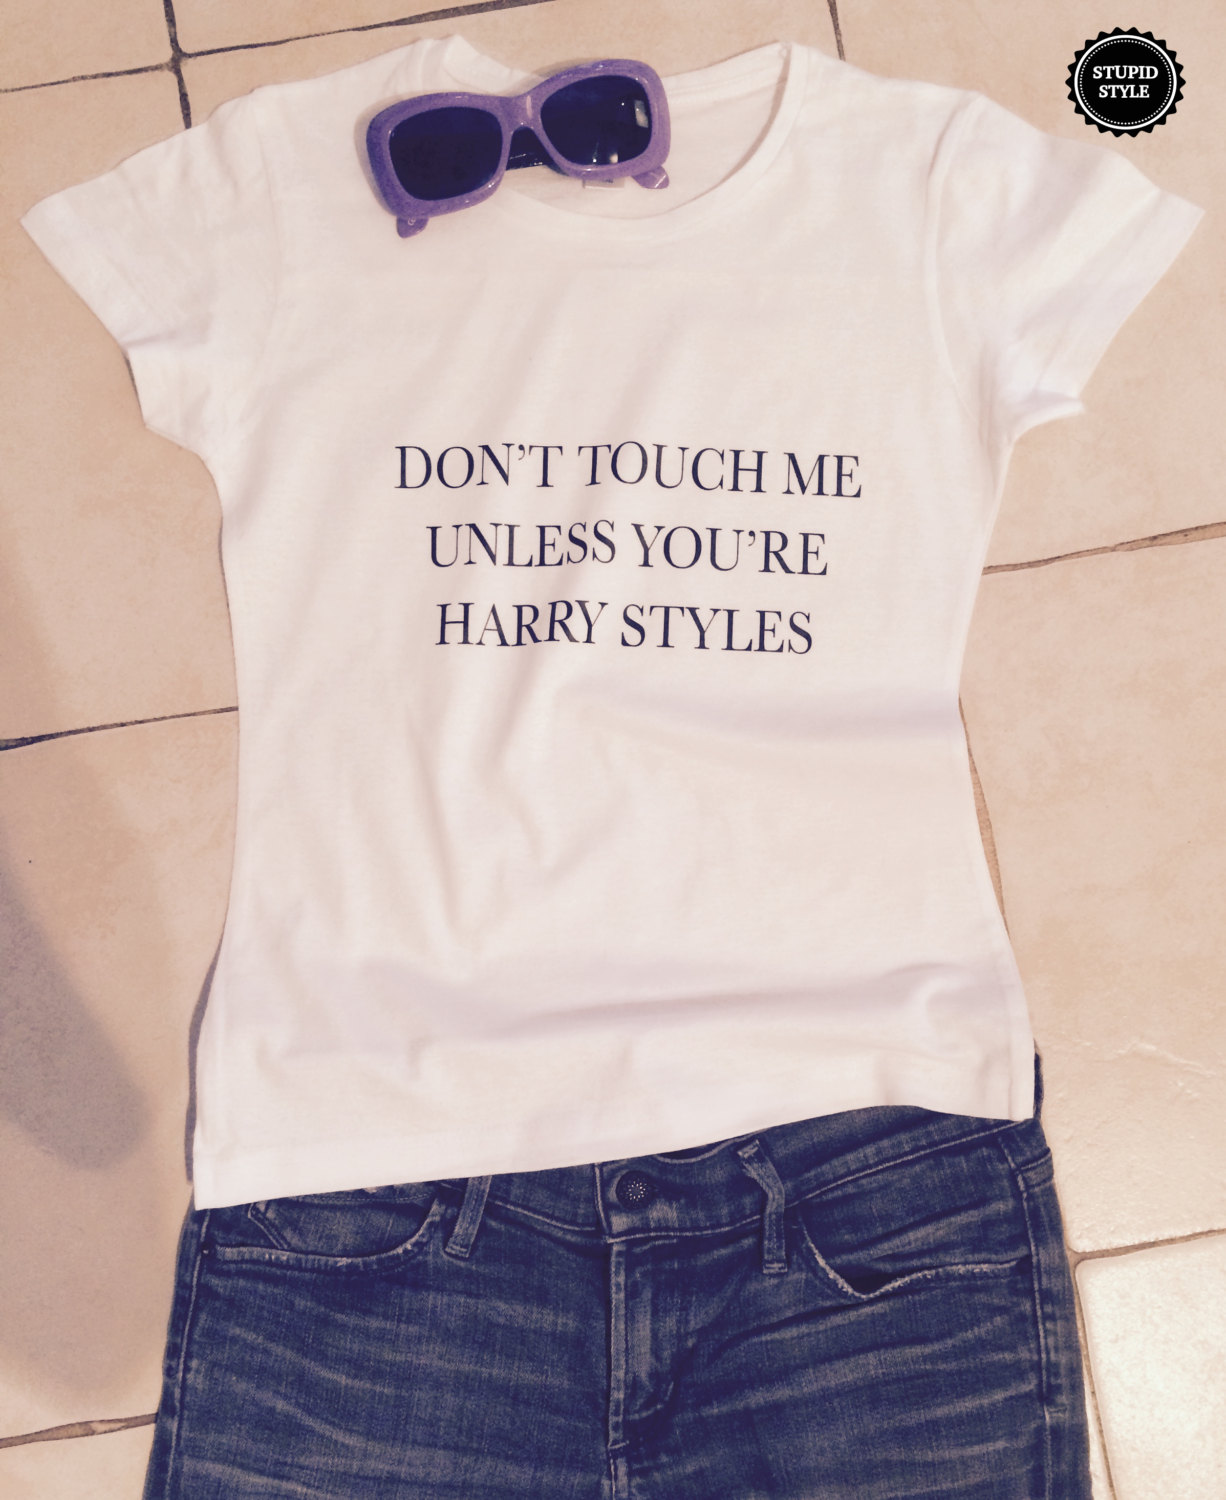 Shirt design womens - Dont Touch Me Unless You Re Harry Styles T Shirts For Women Tshirts Shirts Gifts T Shirt